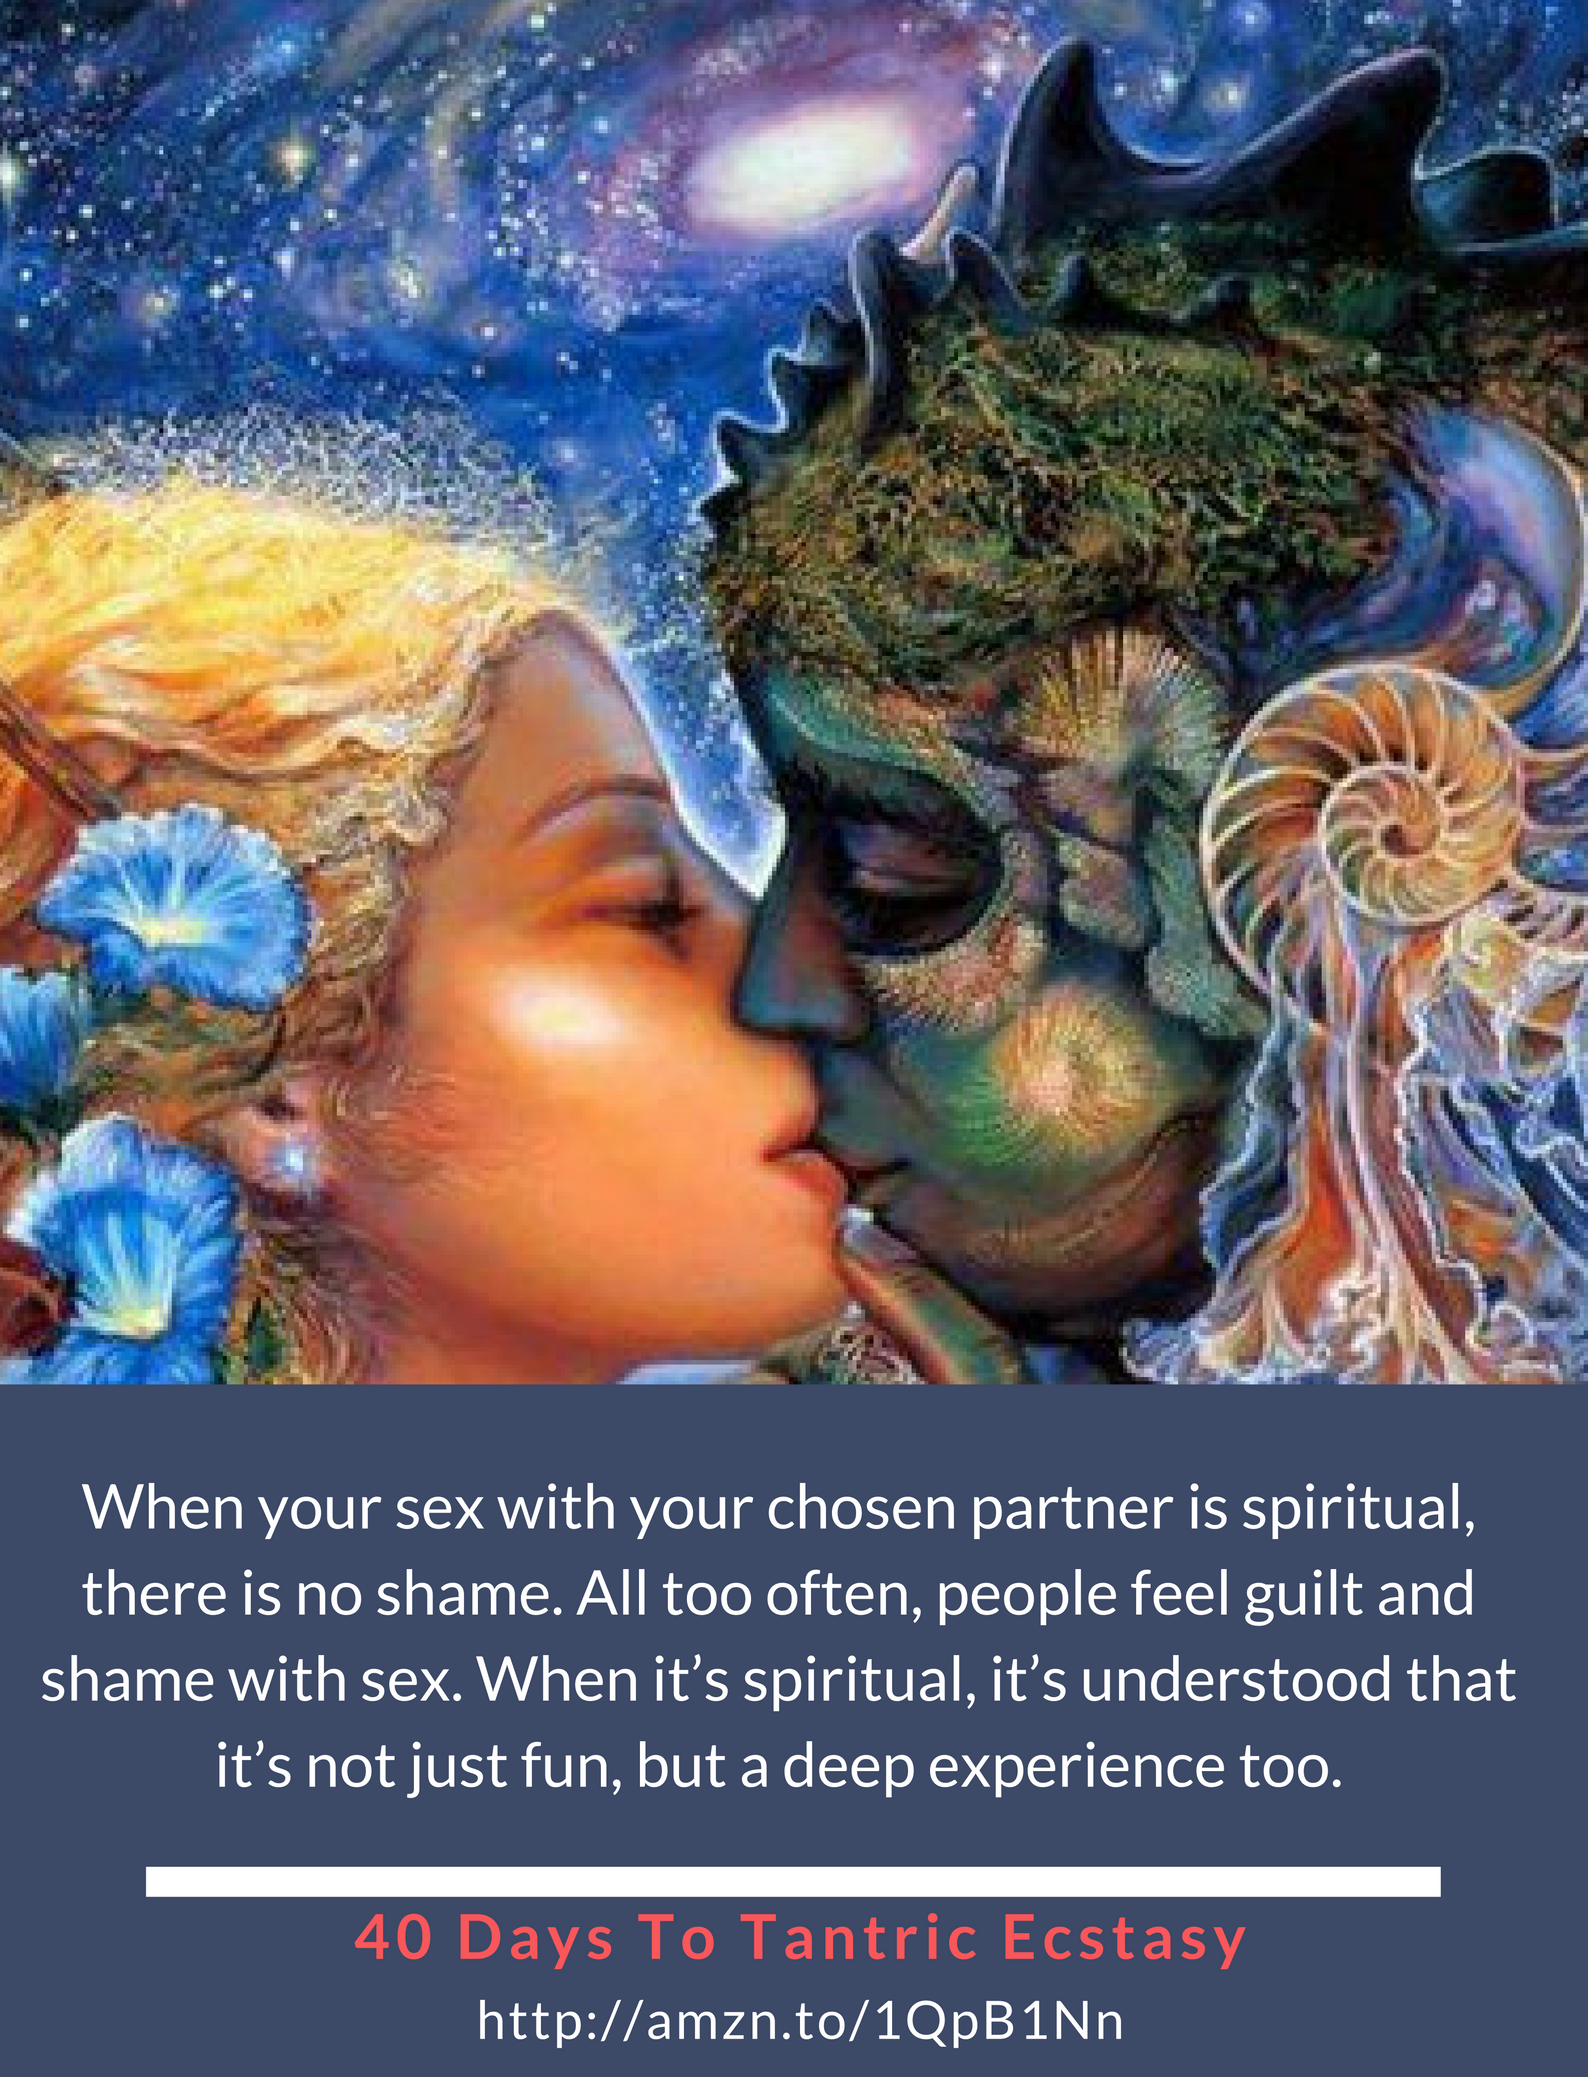 There Is No Shame Involved In Spirituality Get Tantric Pleasure 40 Days Amznto 1QpB1Nn Tantra Spiritual Love Harmonyday